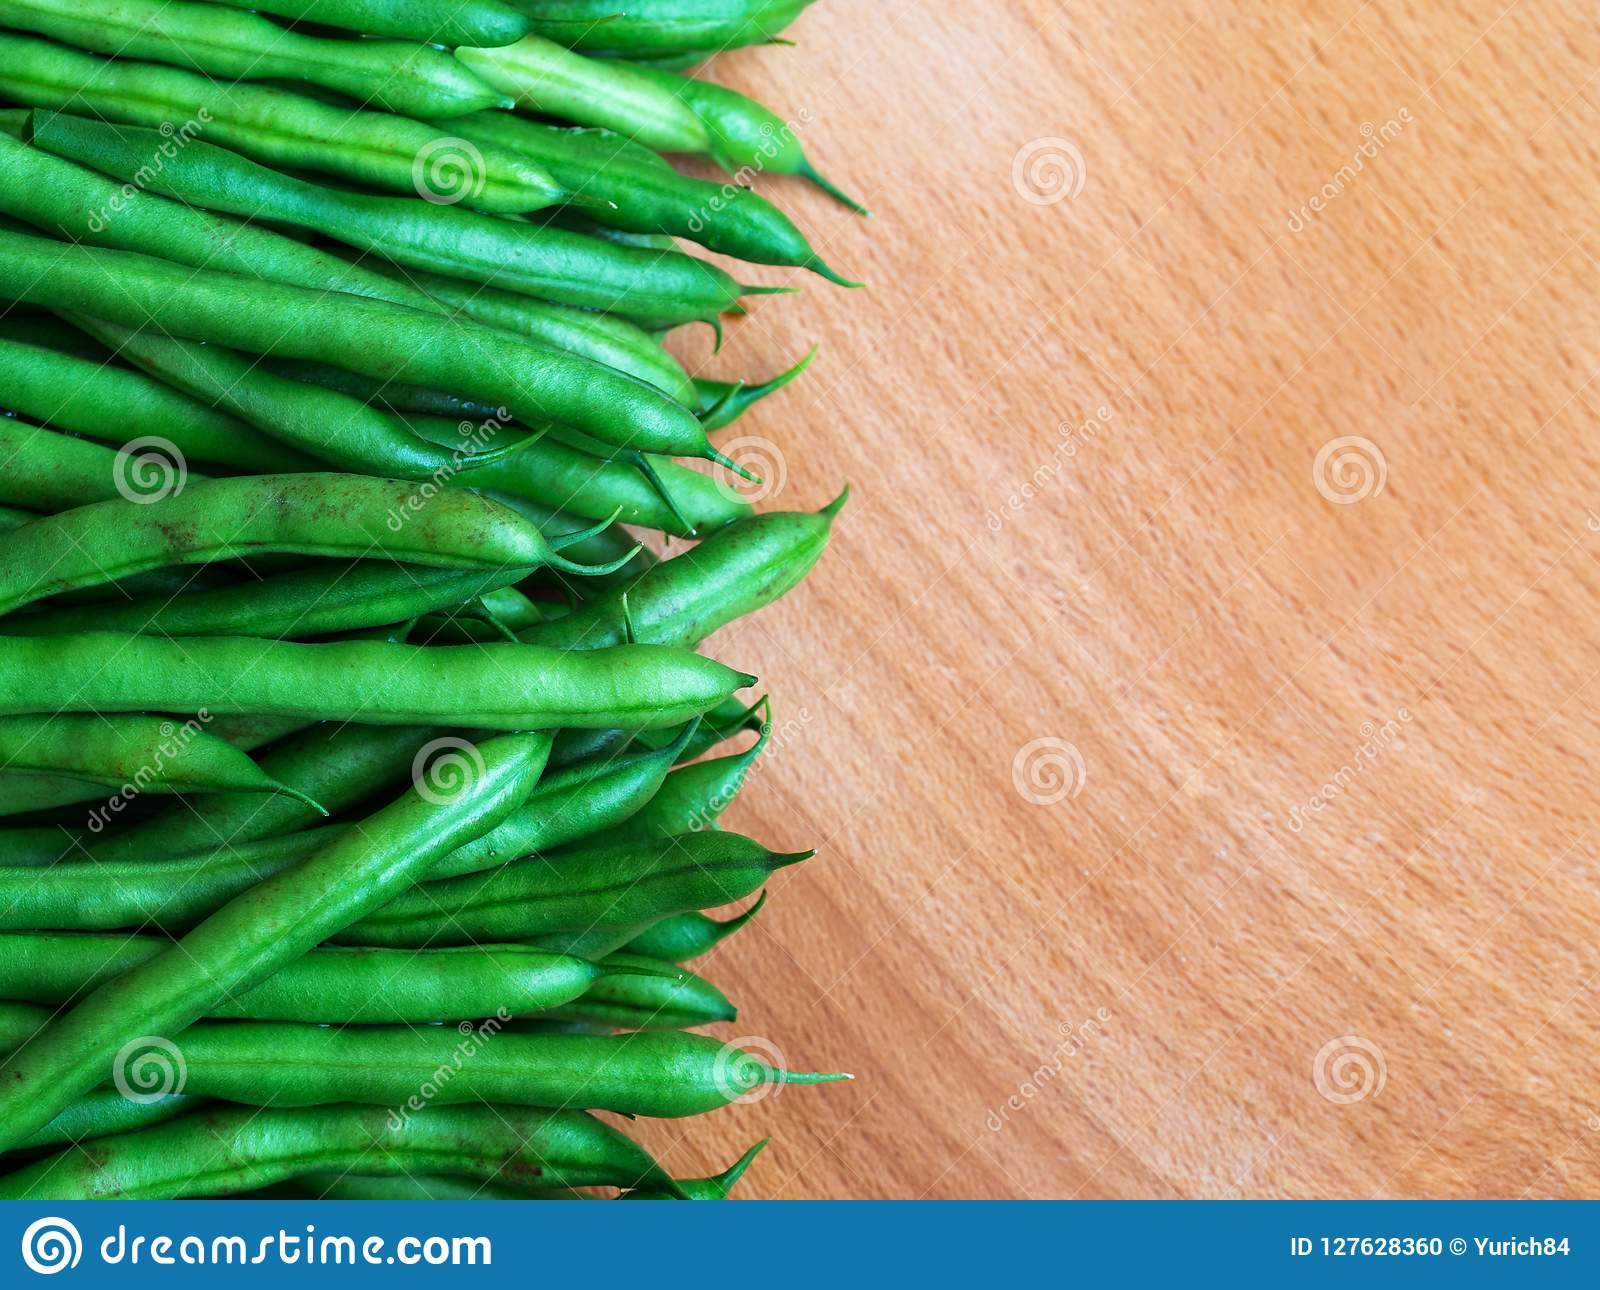 Raw green beans on wood background, close up, top view, copyspace